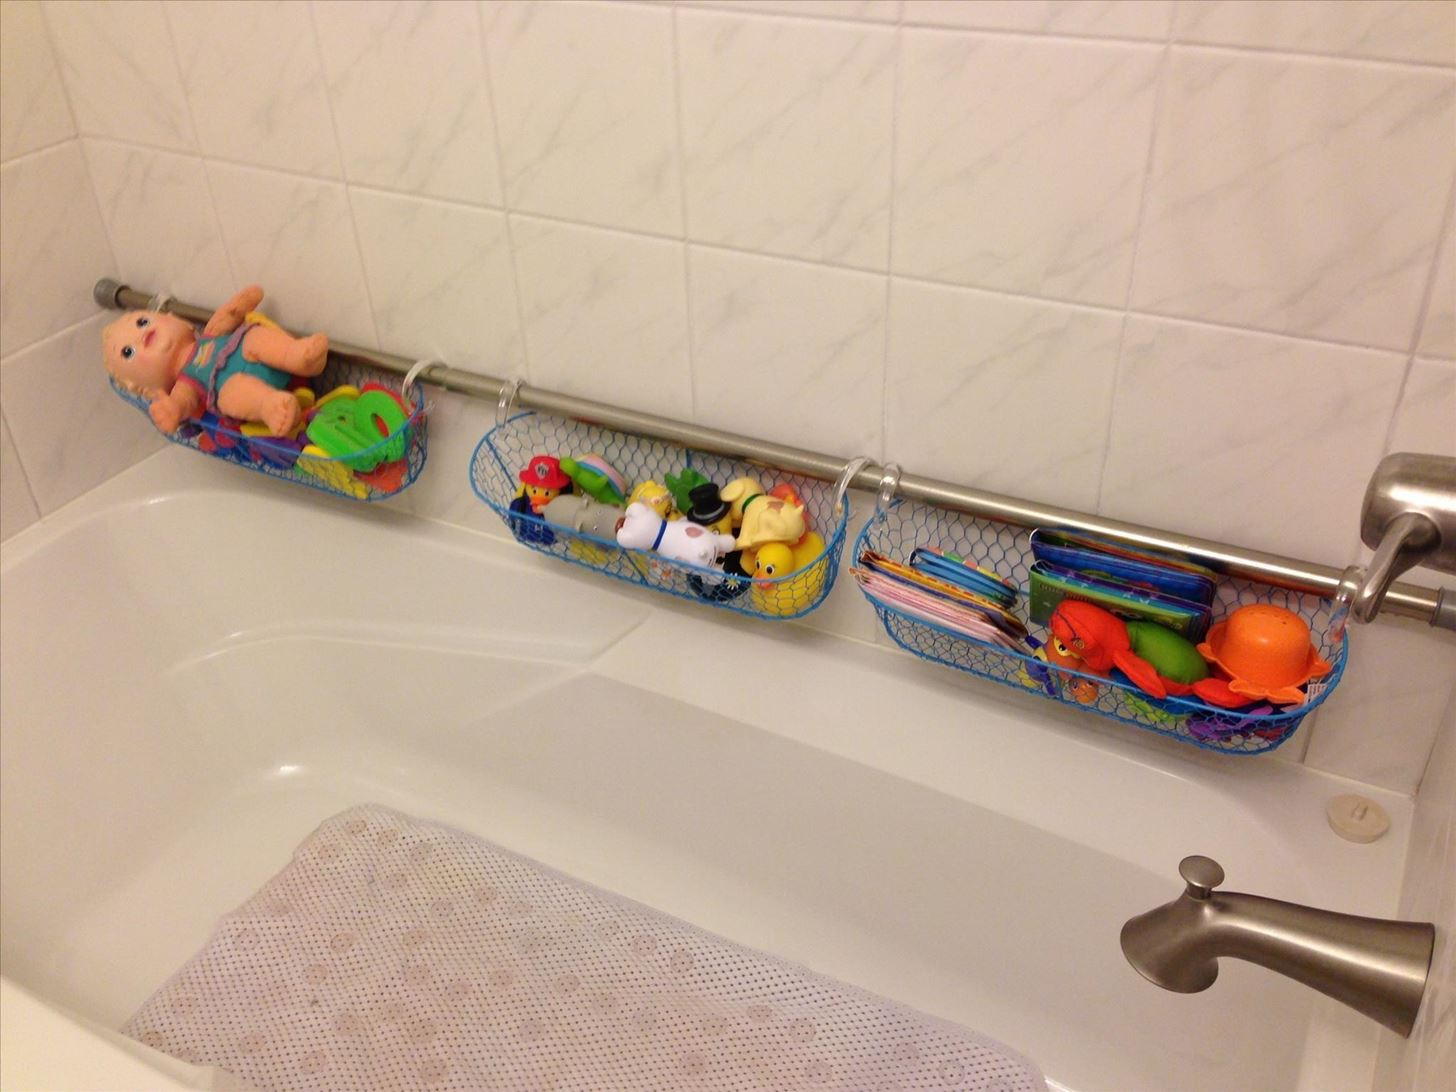 Use Extra Shower Curtain Rods to Increase Bathroom Storage & More